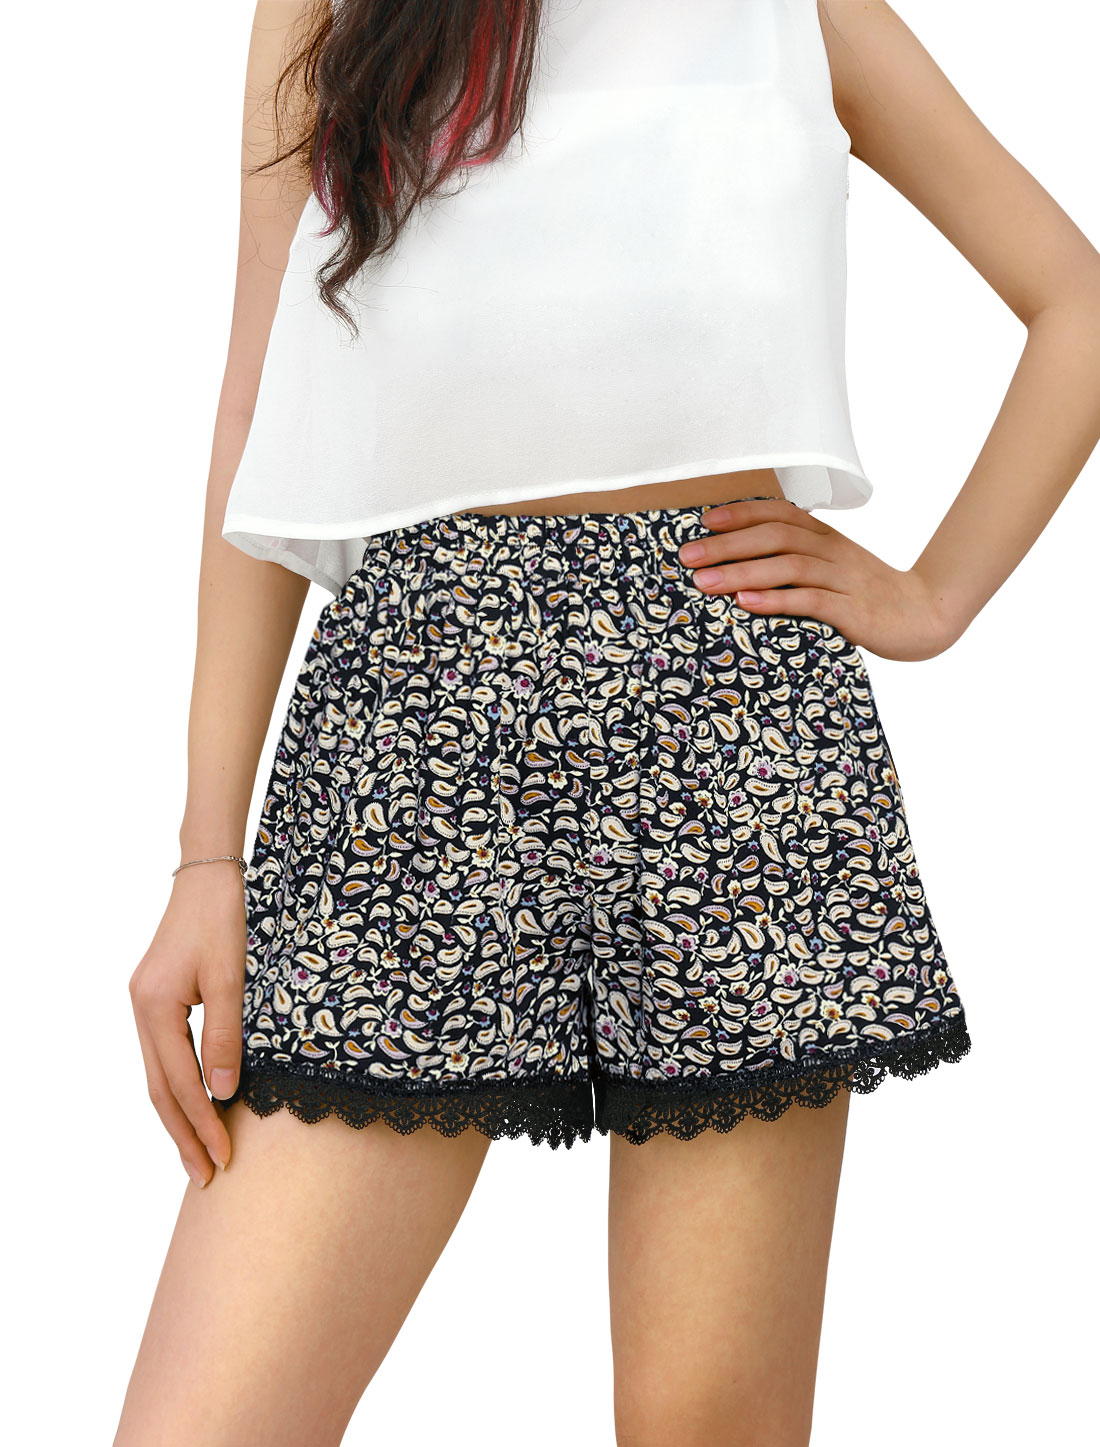 Women Elastic Waist Paisleys Cashew Flower Prints Shorts Black Beige XS